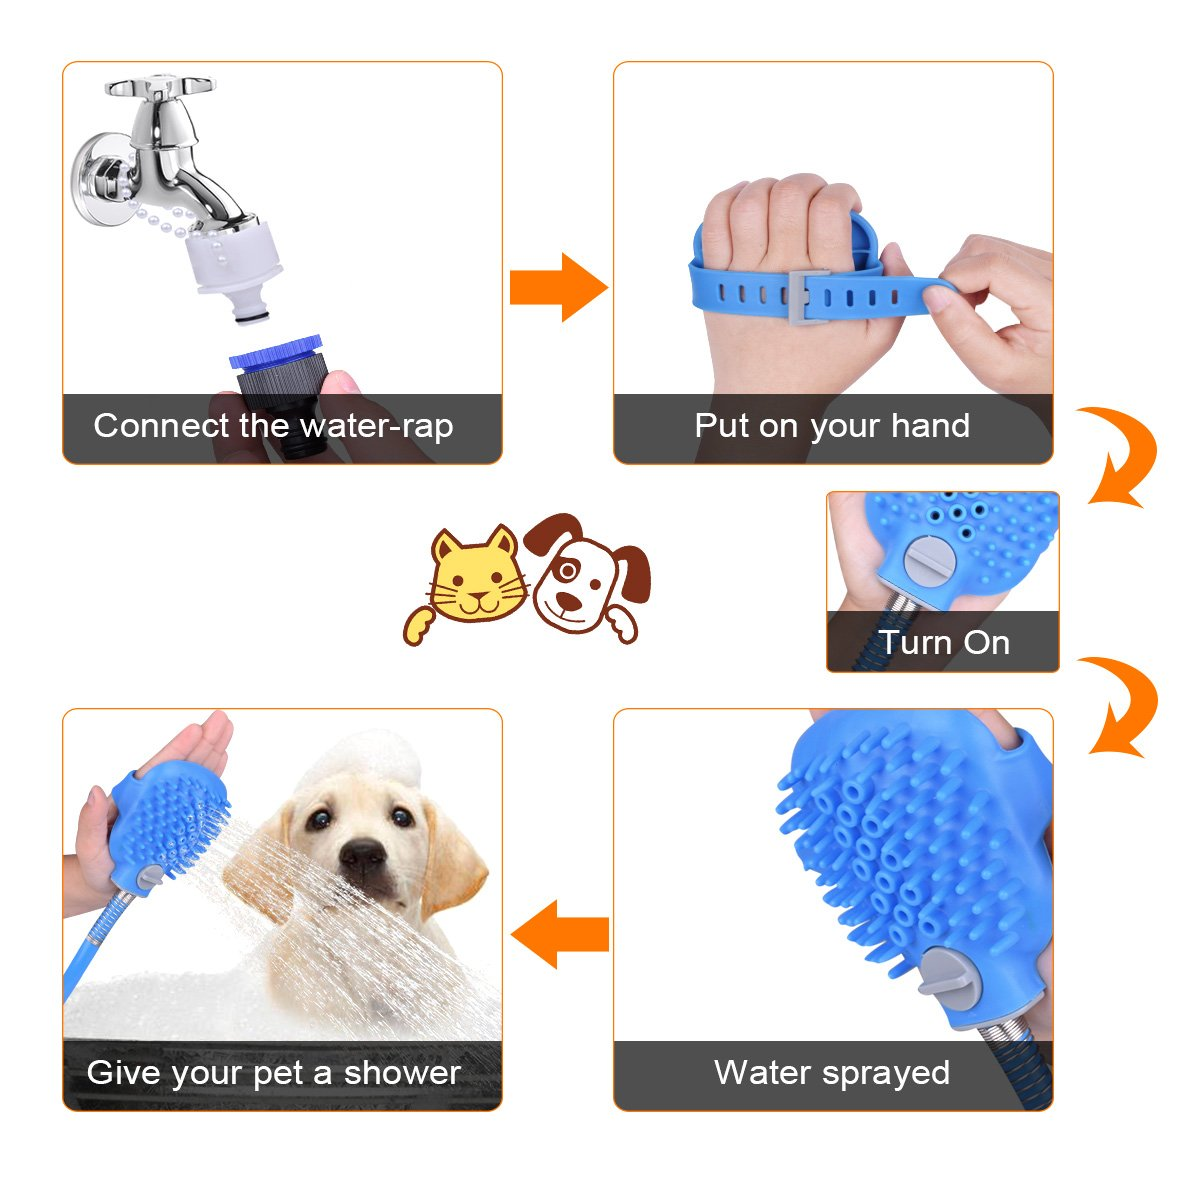 Ducking Pet Shower Sprayer with Brush, Multi-Functional Pet Bathing Tool with ON/OFF Switch for Dog, Cat, Horse Outdoor Grooming, Adjustable handheld Massage with 8 Foot Hose and 2 Hose Adapte by Ducking (Image #3)